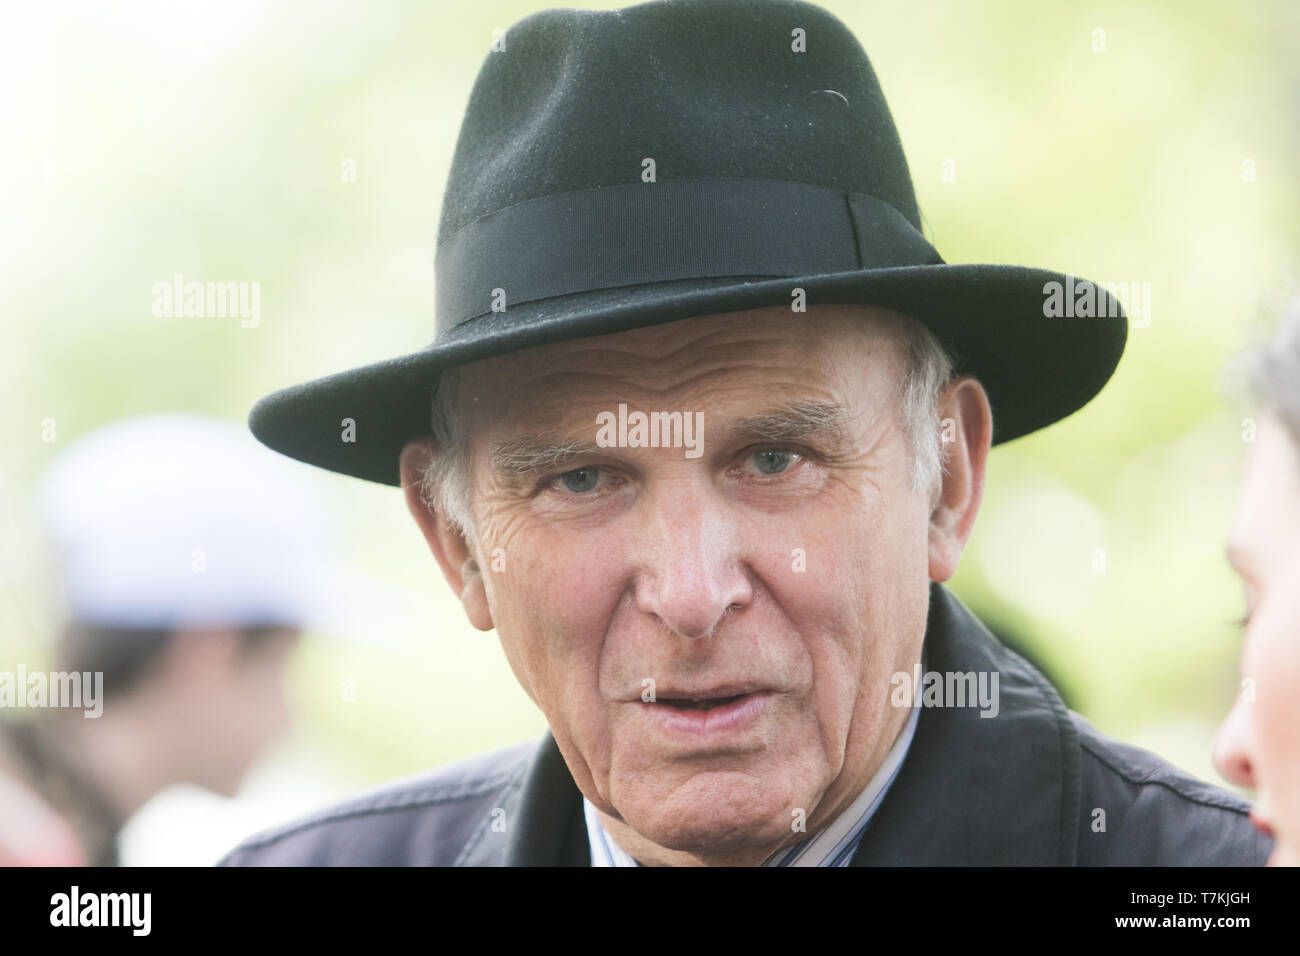 London, UK. 8th May, 2019. Liberal Democrats Party leader, Vince Cable MP for Twickenham seen in Westminster. Vince Cable is steadfastly a Pro Europe  Politician who has campaigned for Britain to stay in the European Union Credit: amer ghazzal/Alamy Live News Stock Photo